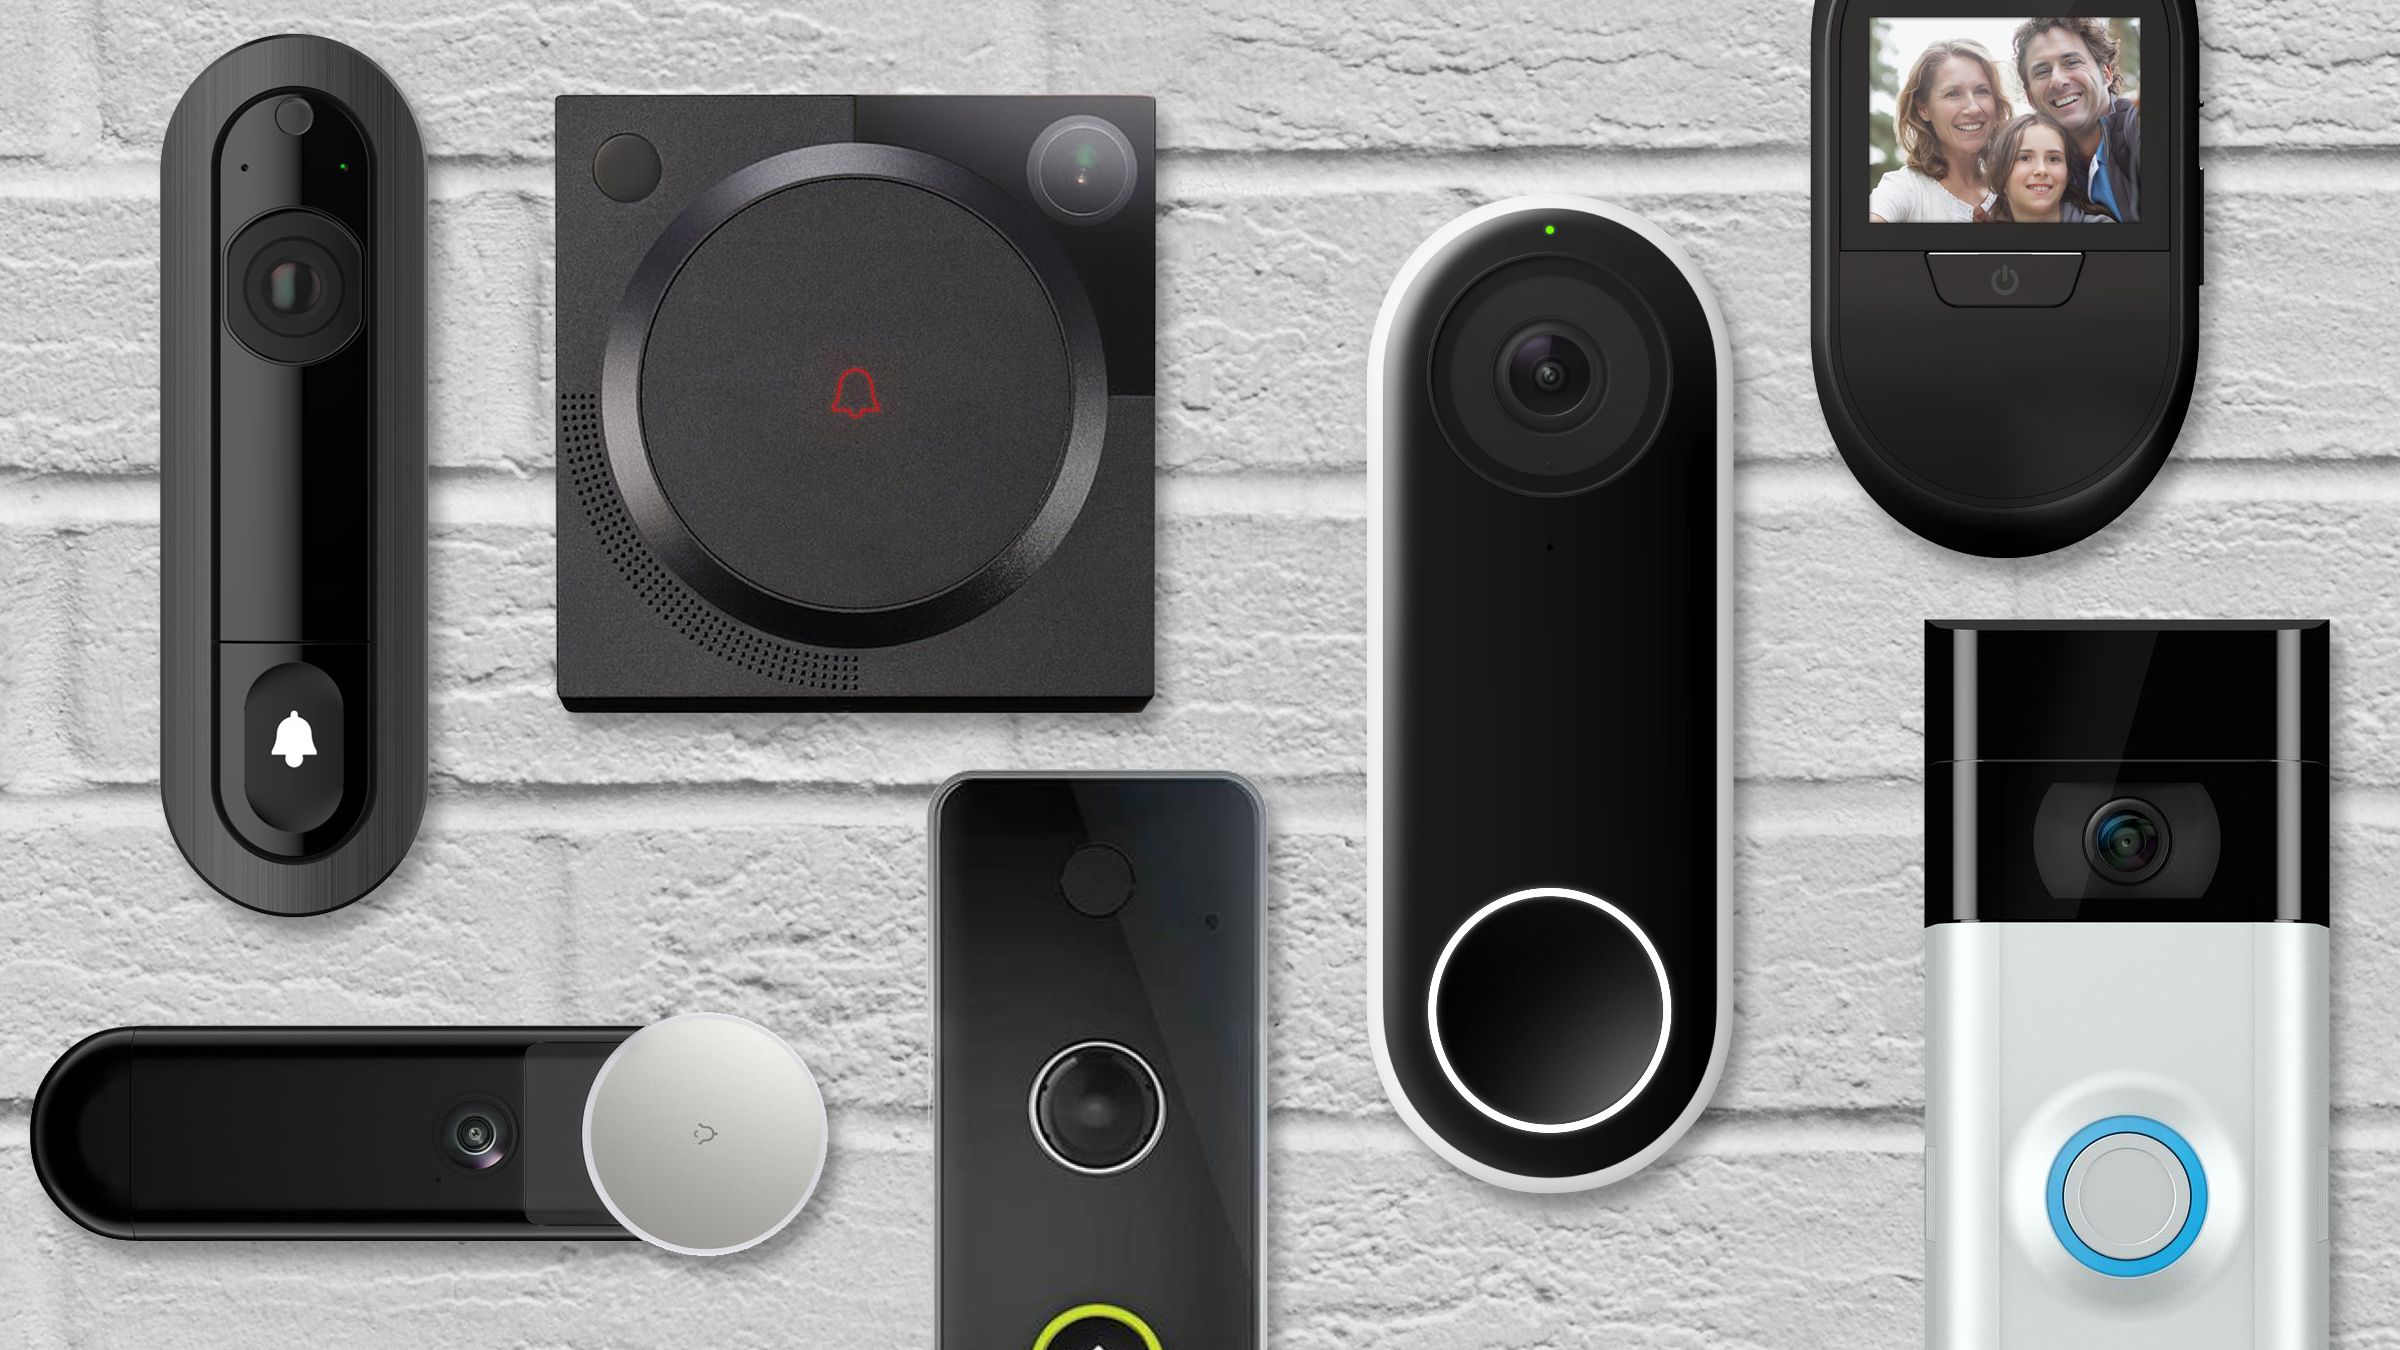 Best video doorbell Nest vs. Ring vs. August and all the